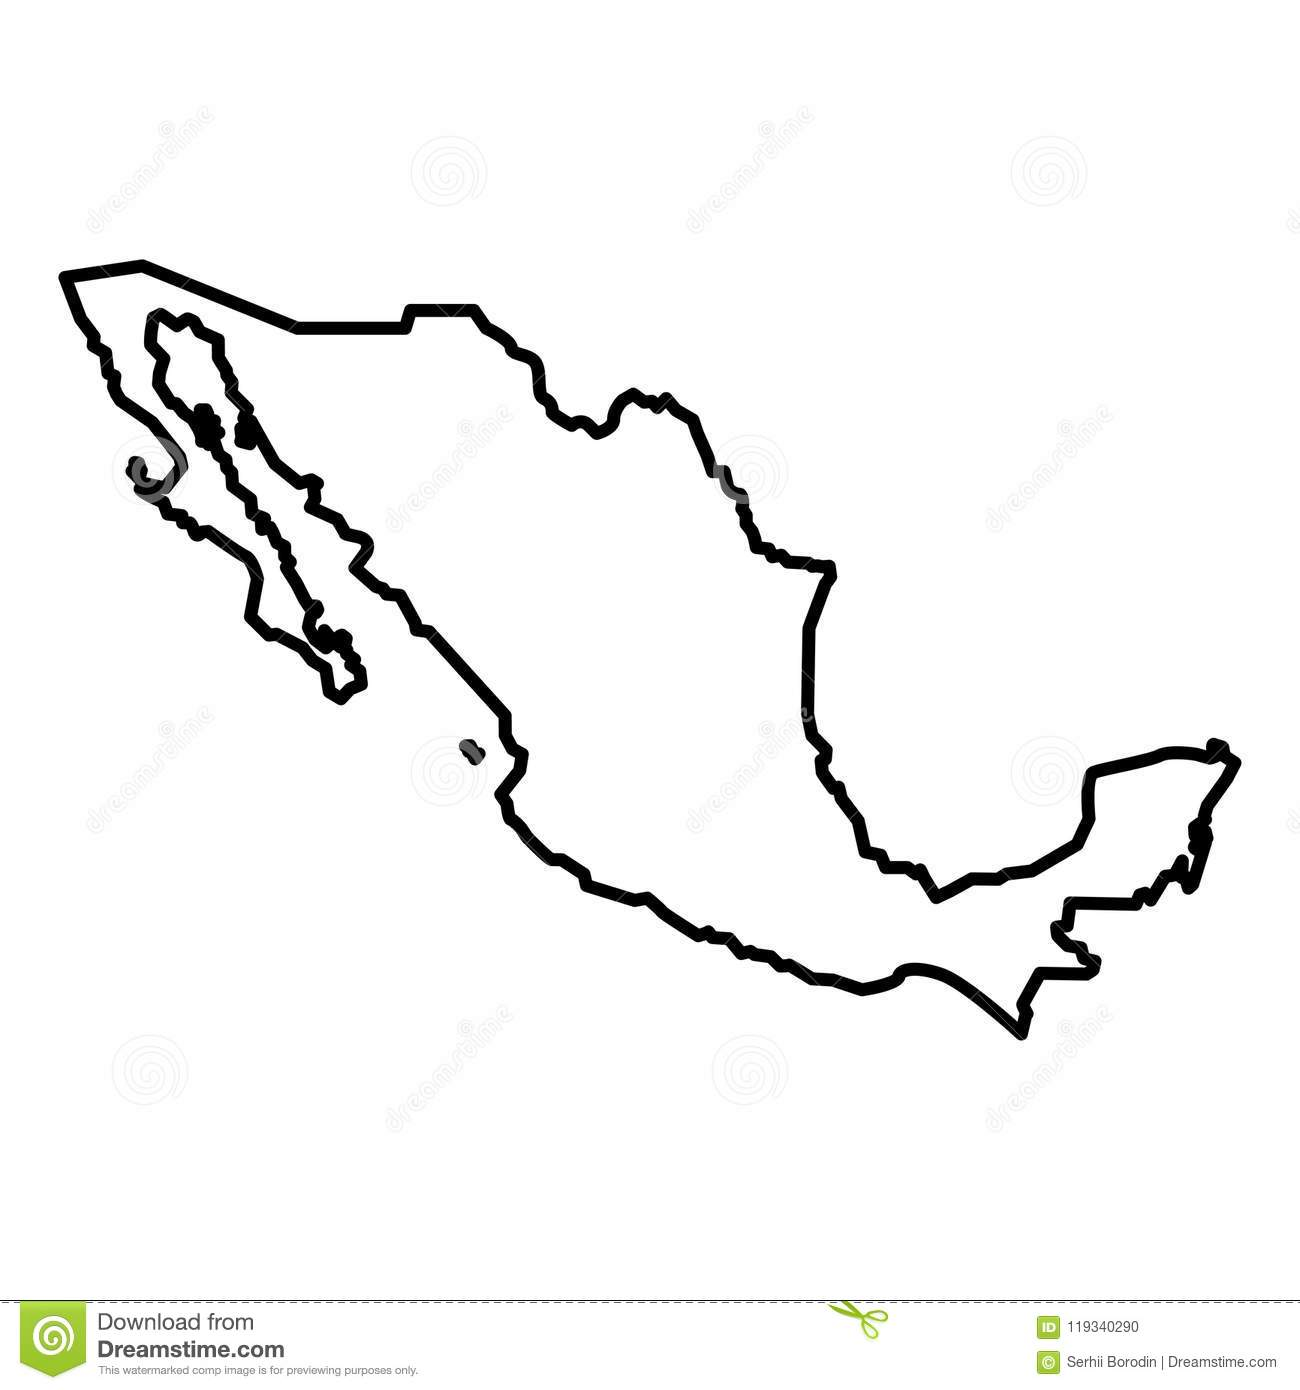 Map Of Mexico Icon Black Color Illustration Flat Style Simple Image